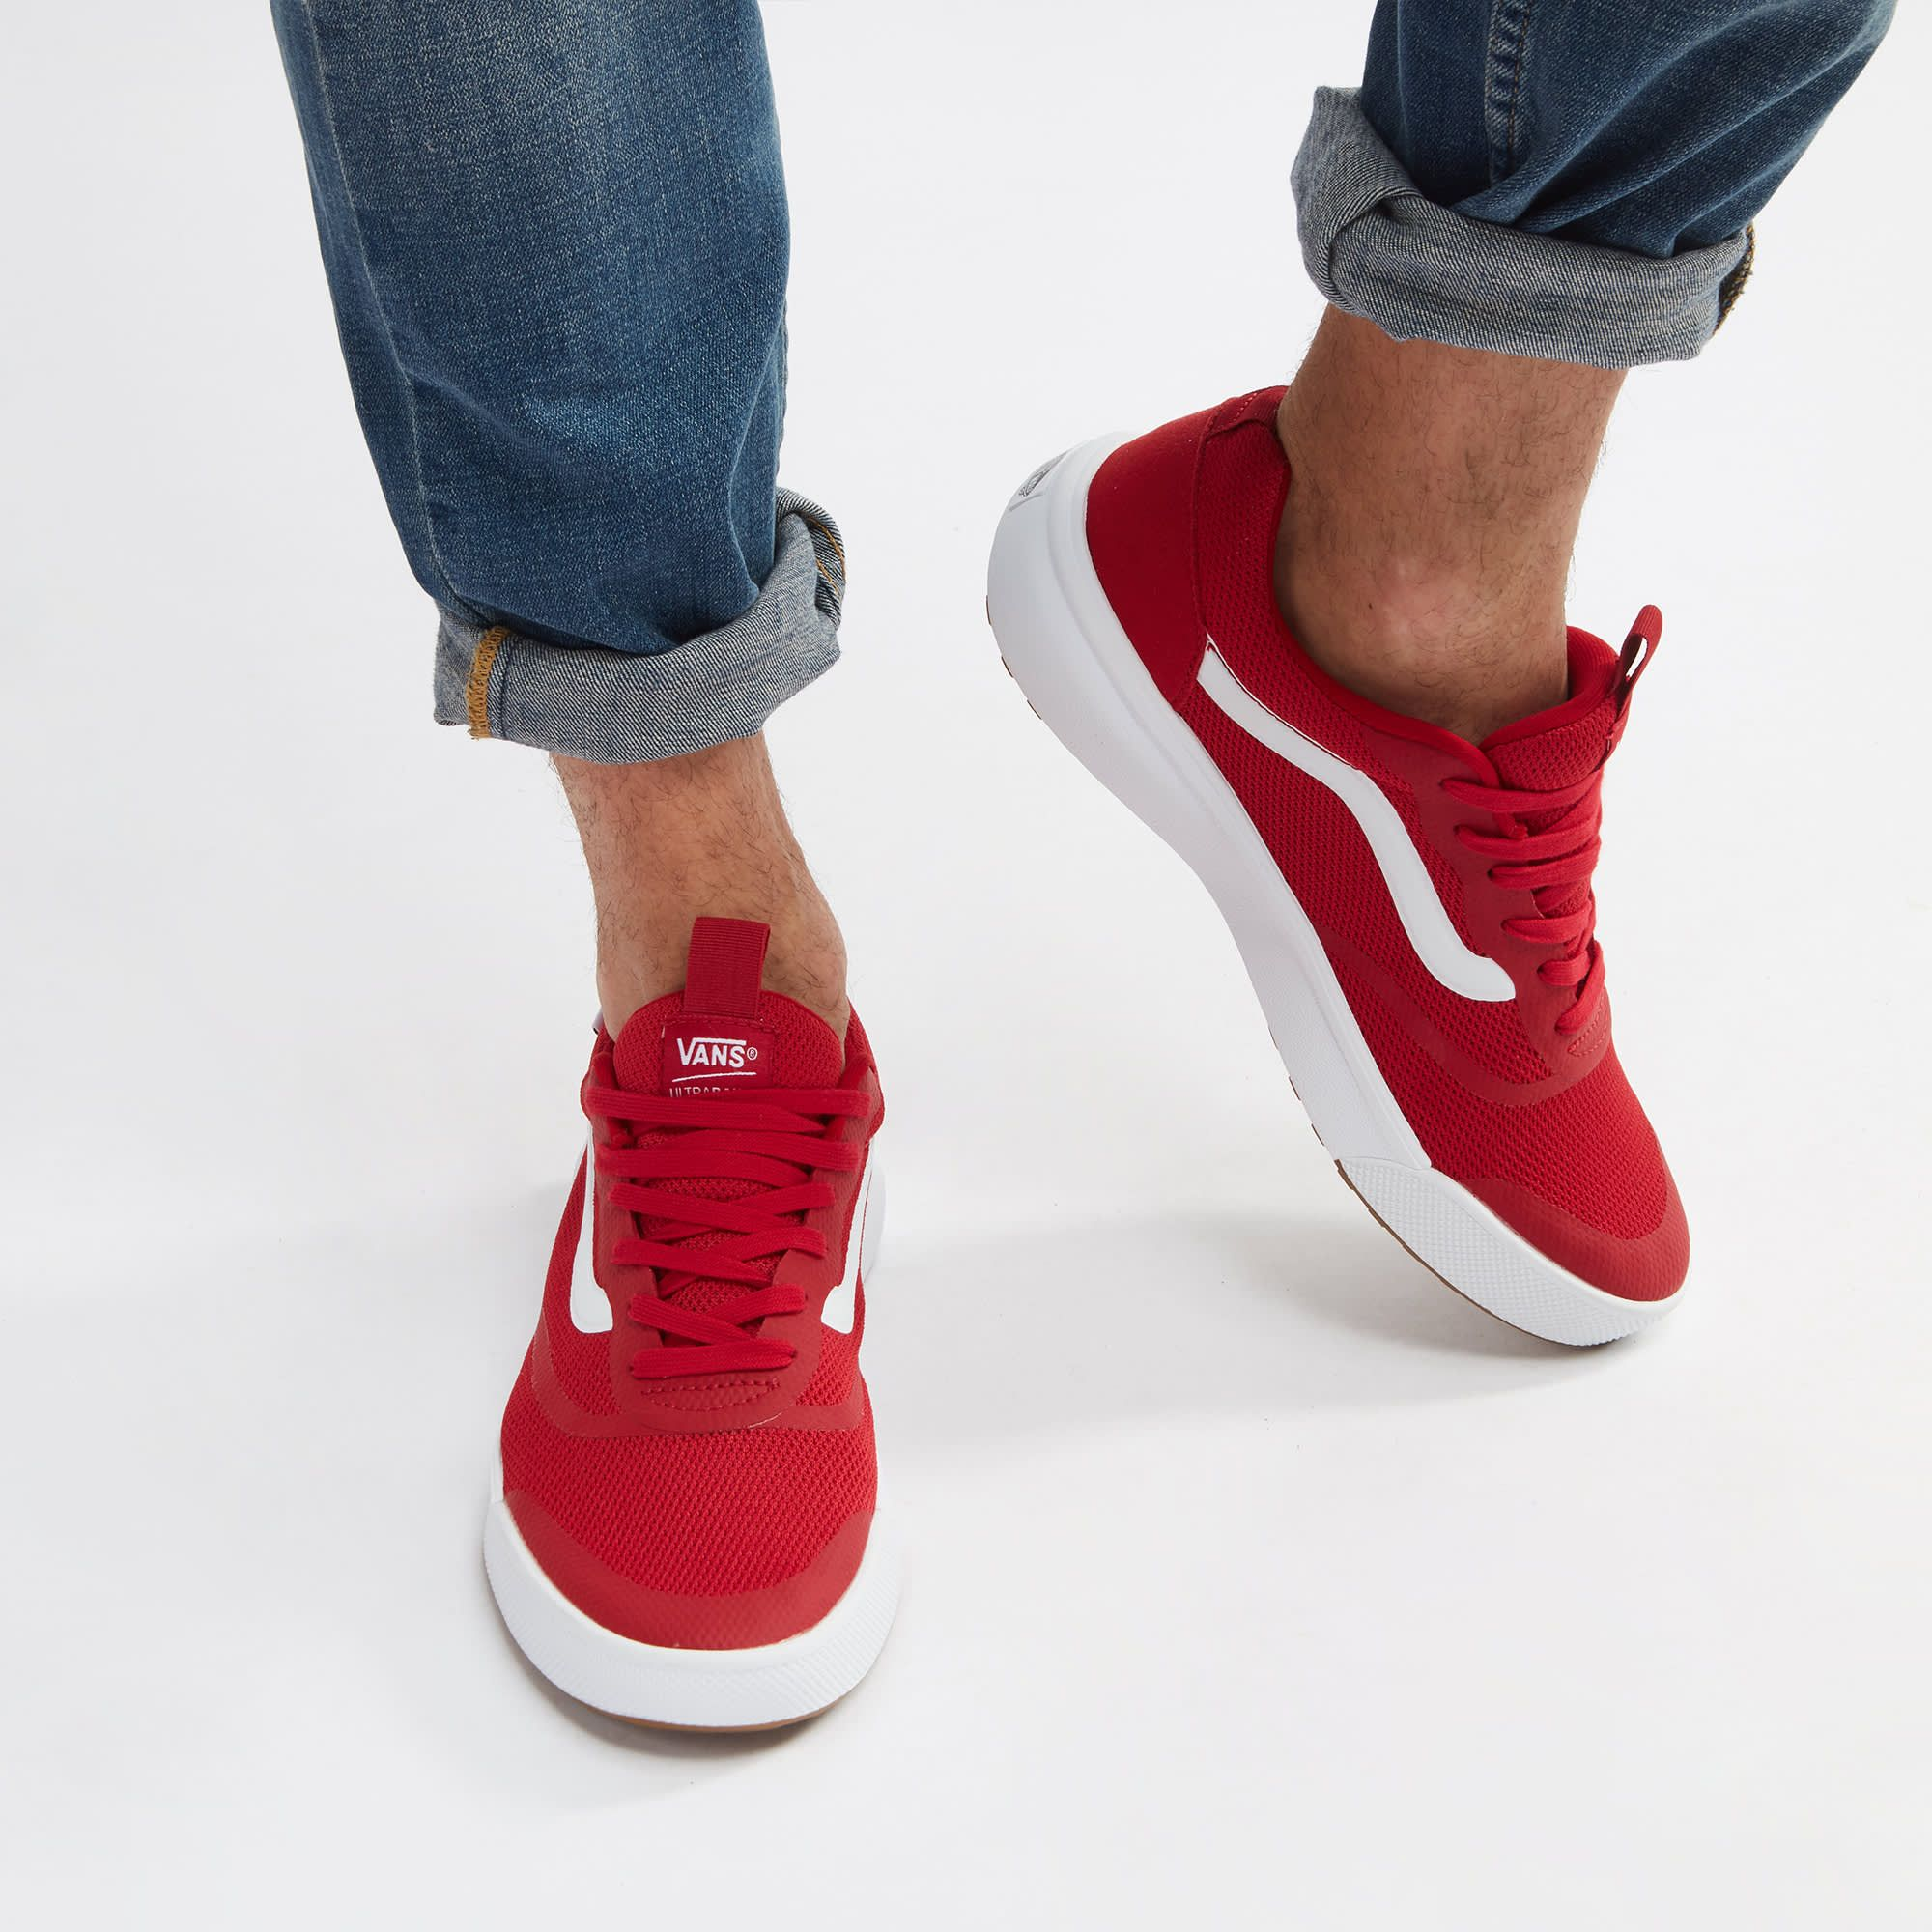 c22d7ce3abfe7c Shop Red Vans UltraRange Rapidweld Shoe for Mens by Vans